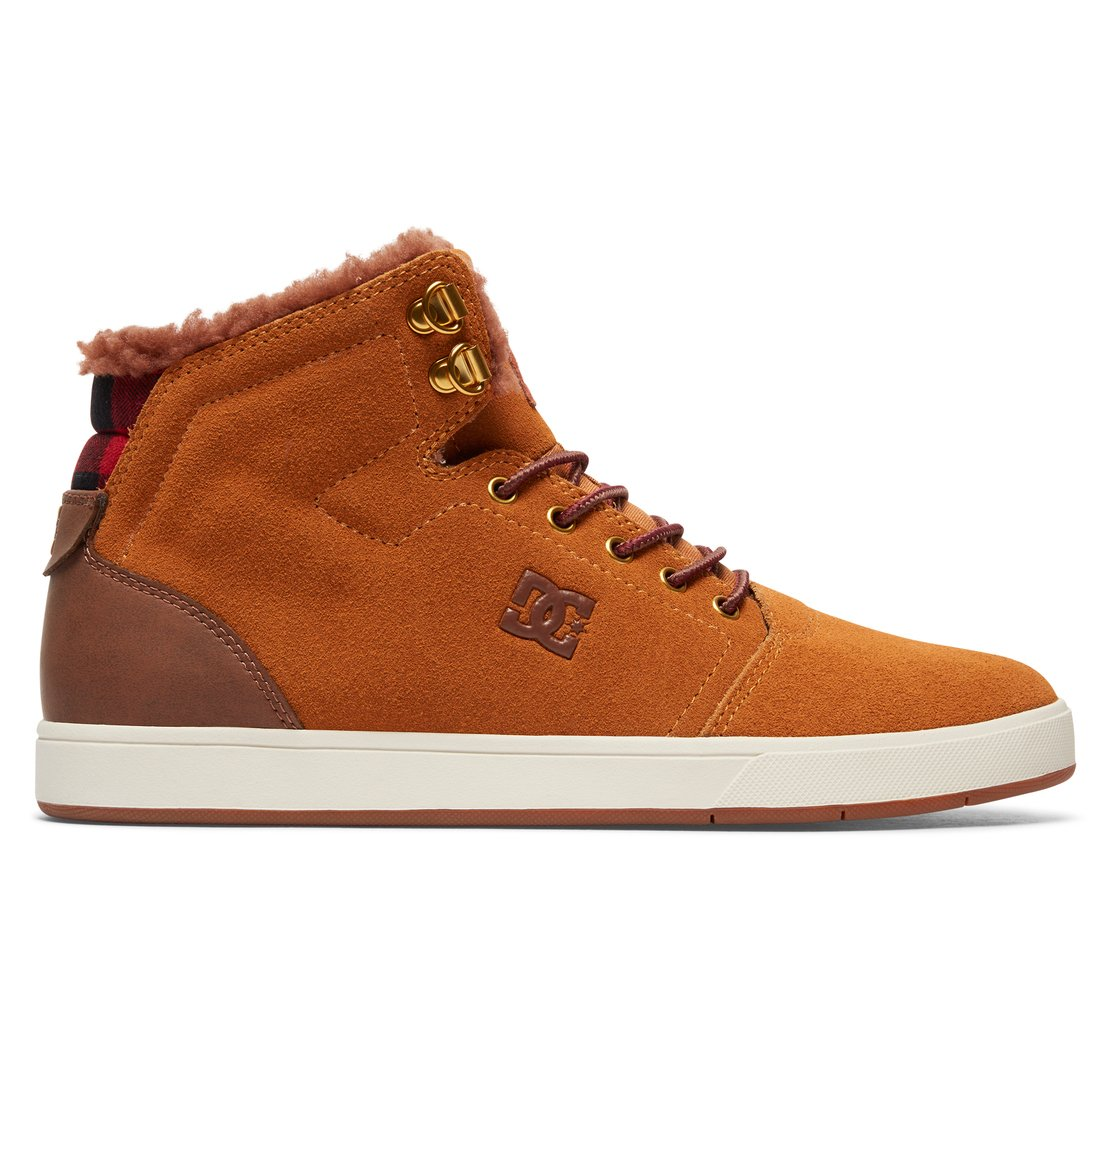 DC Shoes Crisis High - High-Top Shoes - Chaussures montantes - Homme 1XrGNzj